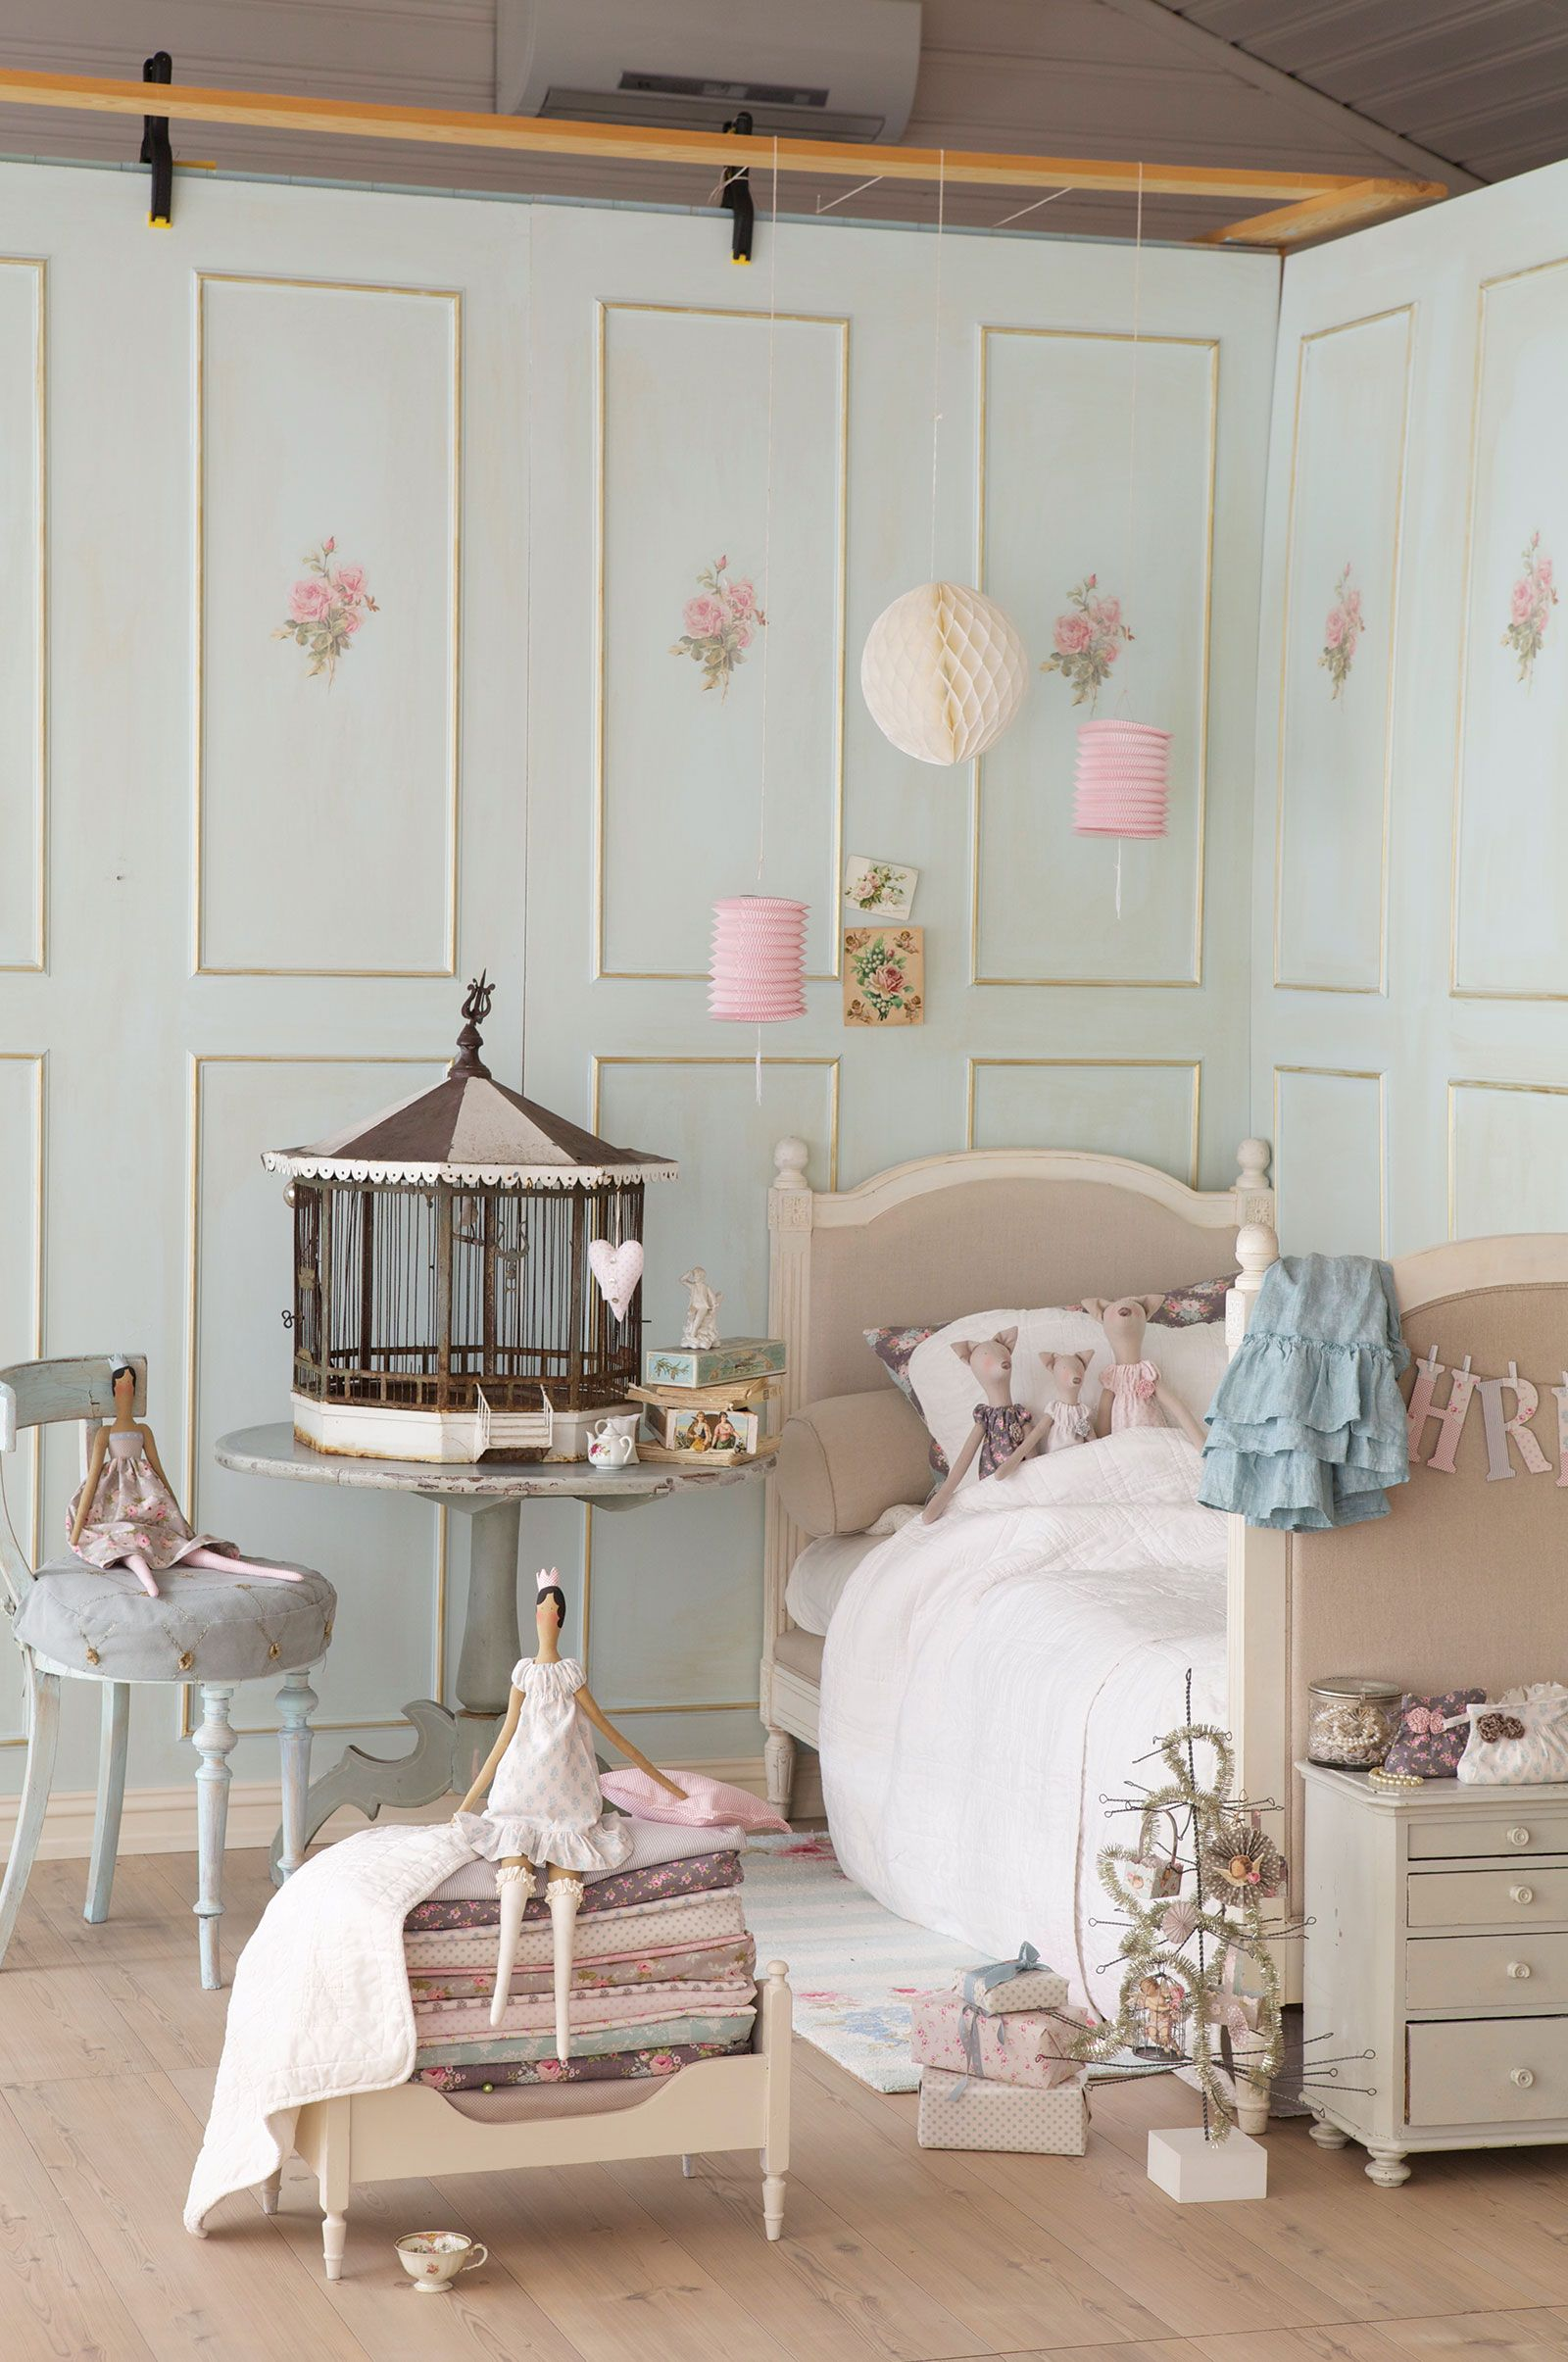 Girls Room: The Walls Are Soft Teal And Decorated With